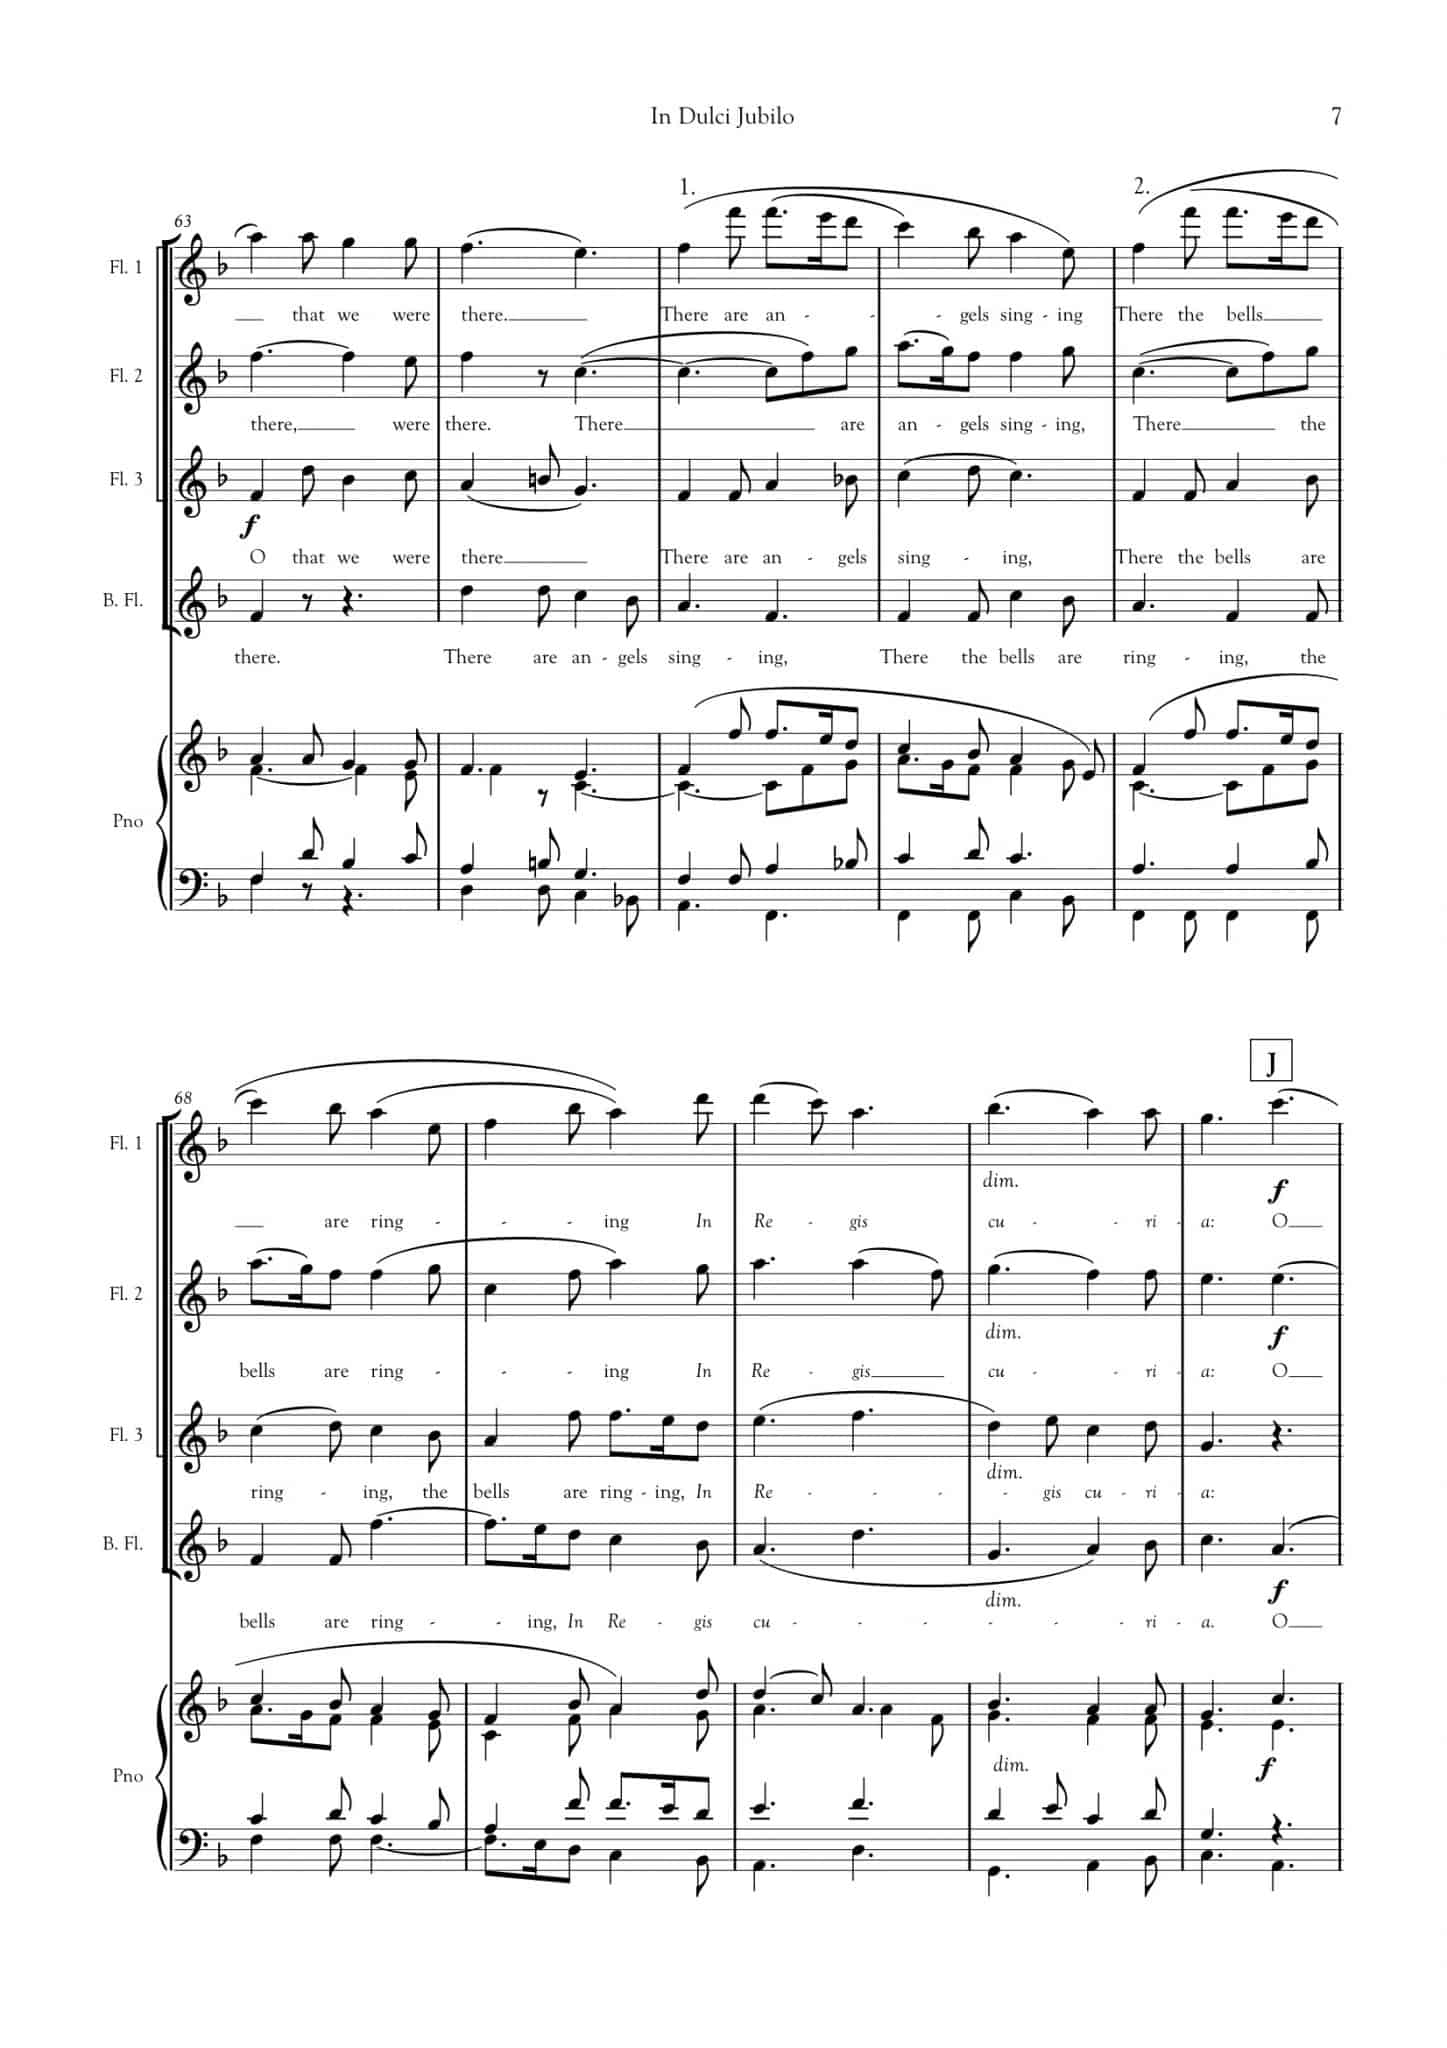 Simply Flute - In Dulci Jubilo - all parts_title sheet_no words copy_Part16